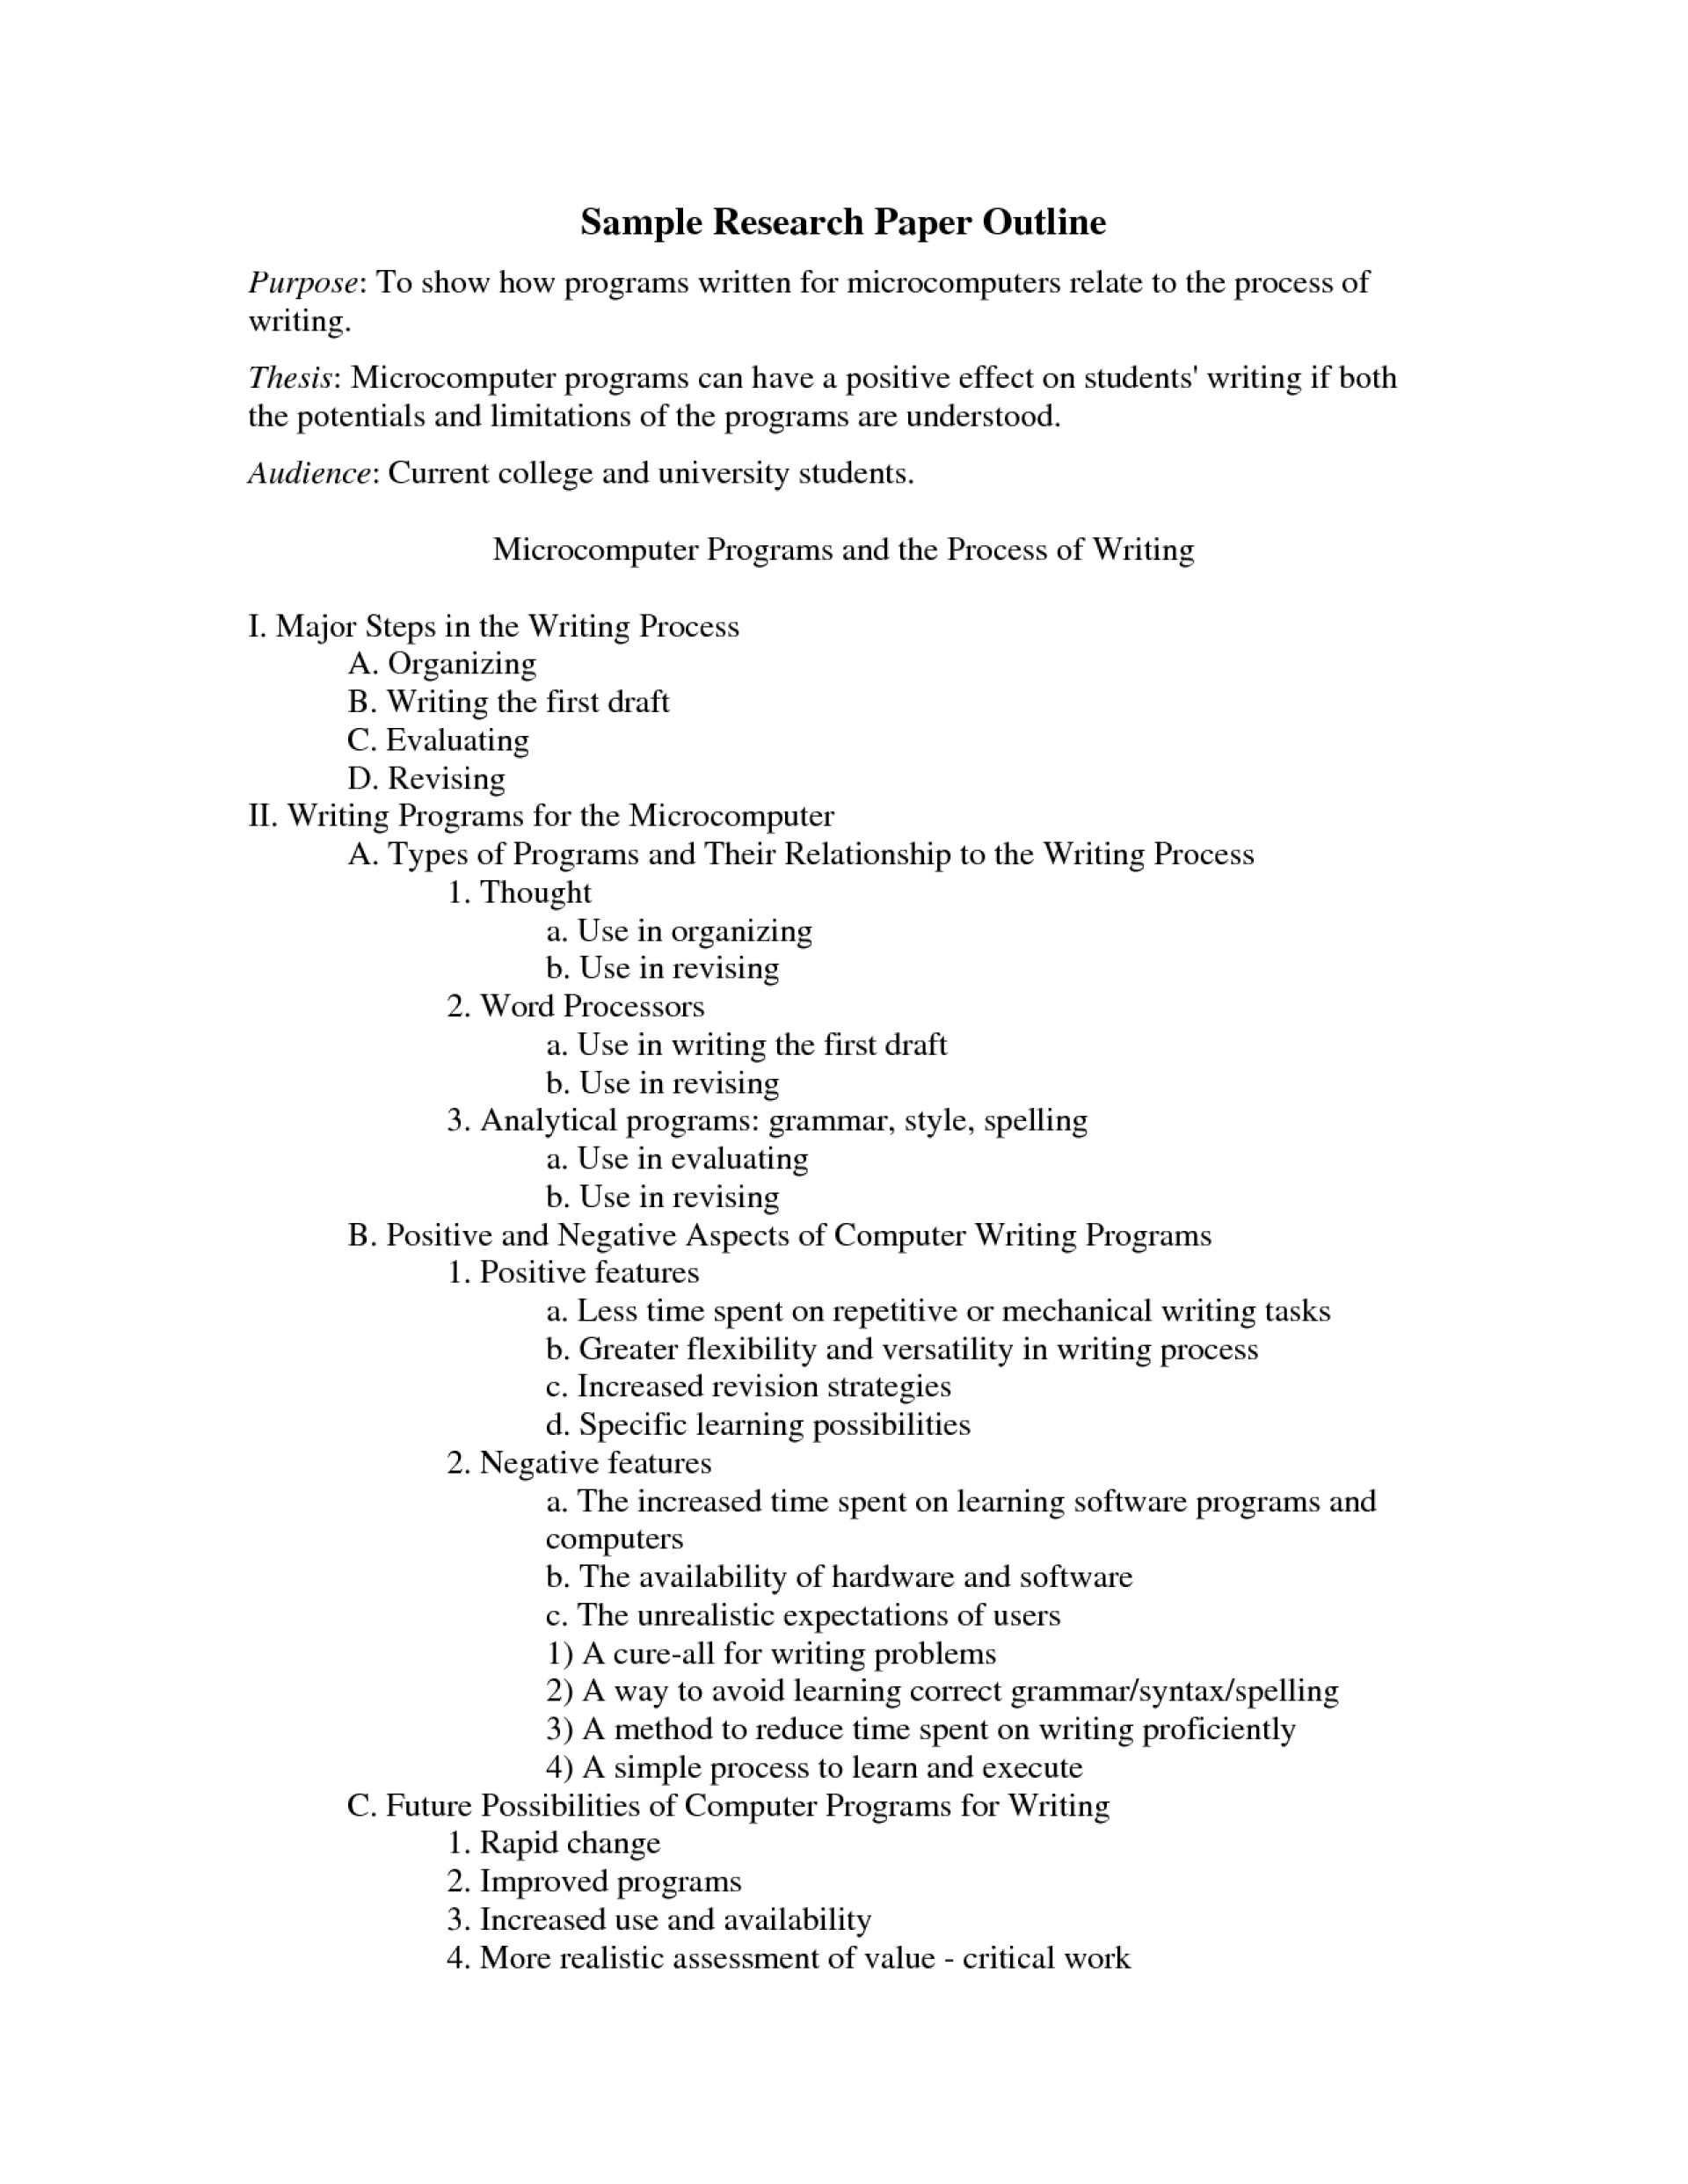 006 Apa Research Paper Outline Template College Examples 477364 Striking Free Blank 1920